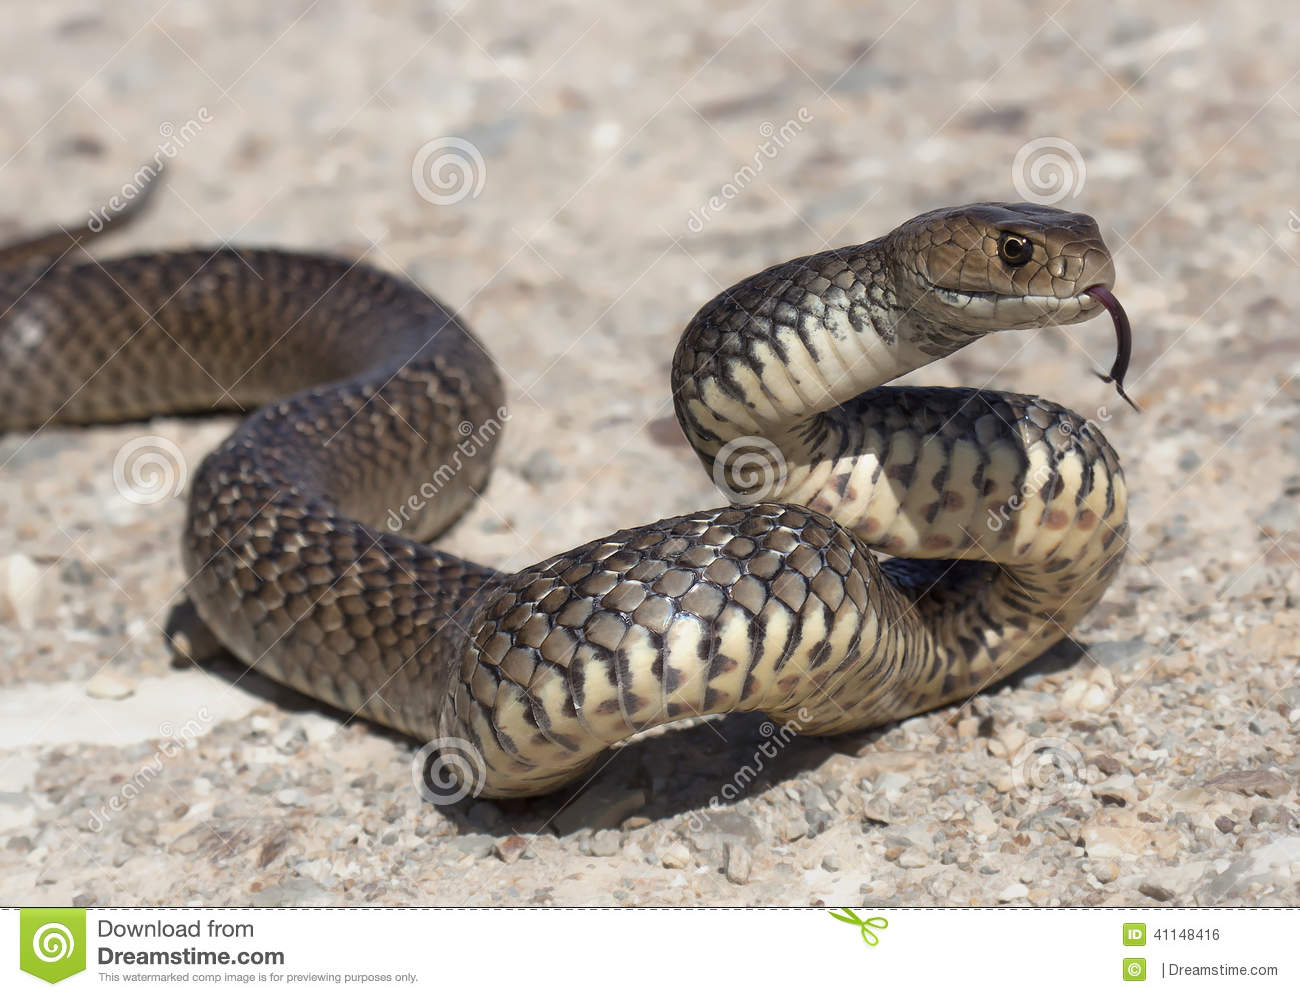 Eastern Brown Snake clipart #11, Download drawings